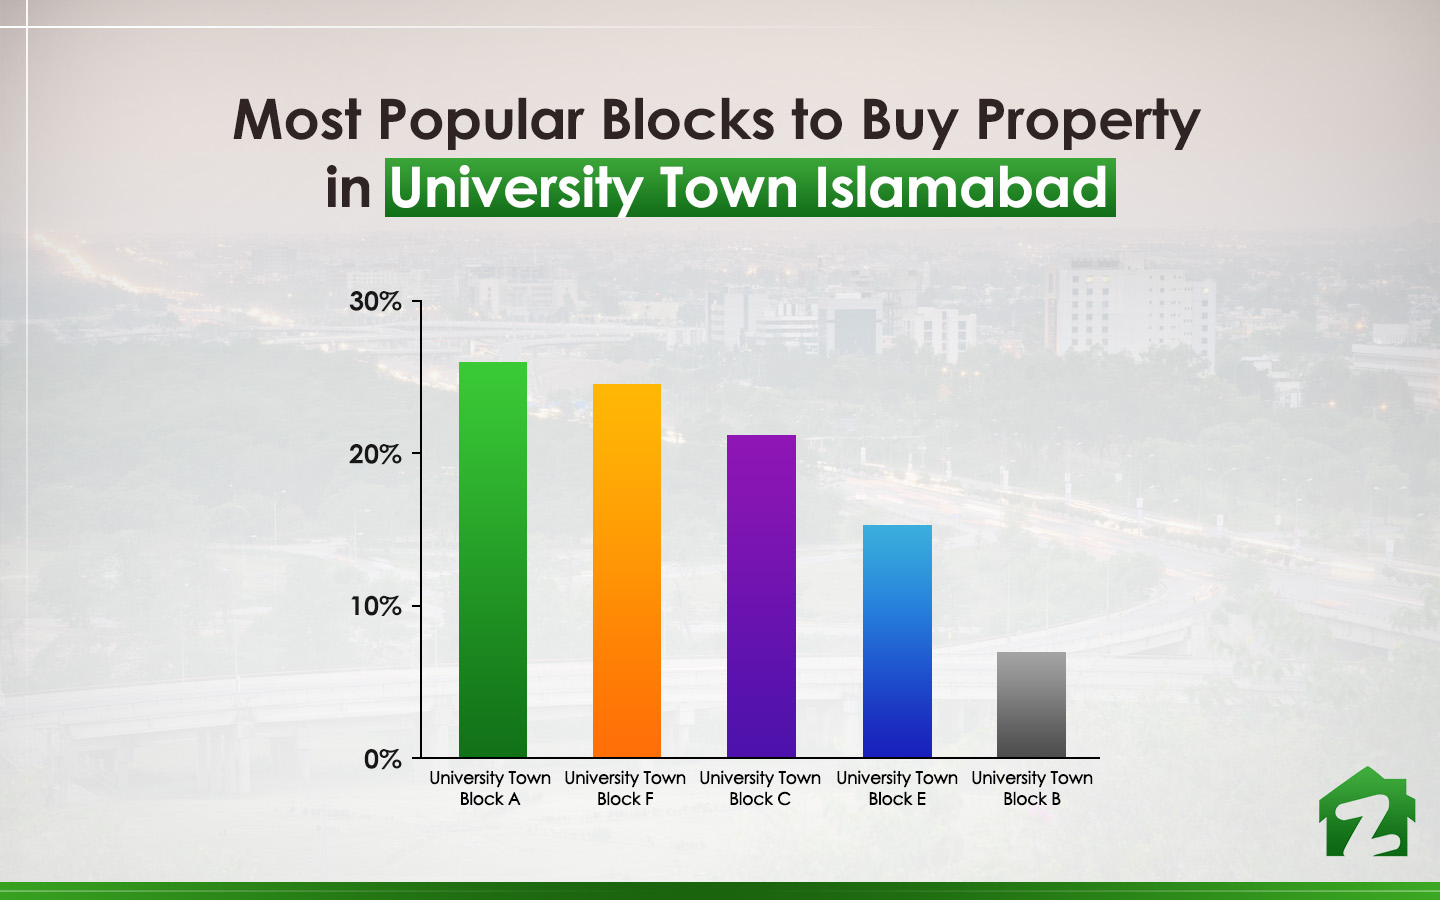 popular blocks of University Town Islamabad for buying property